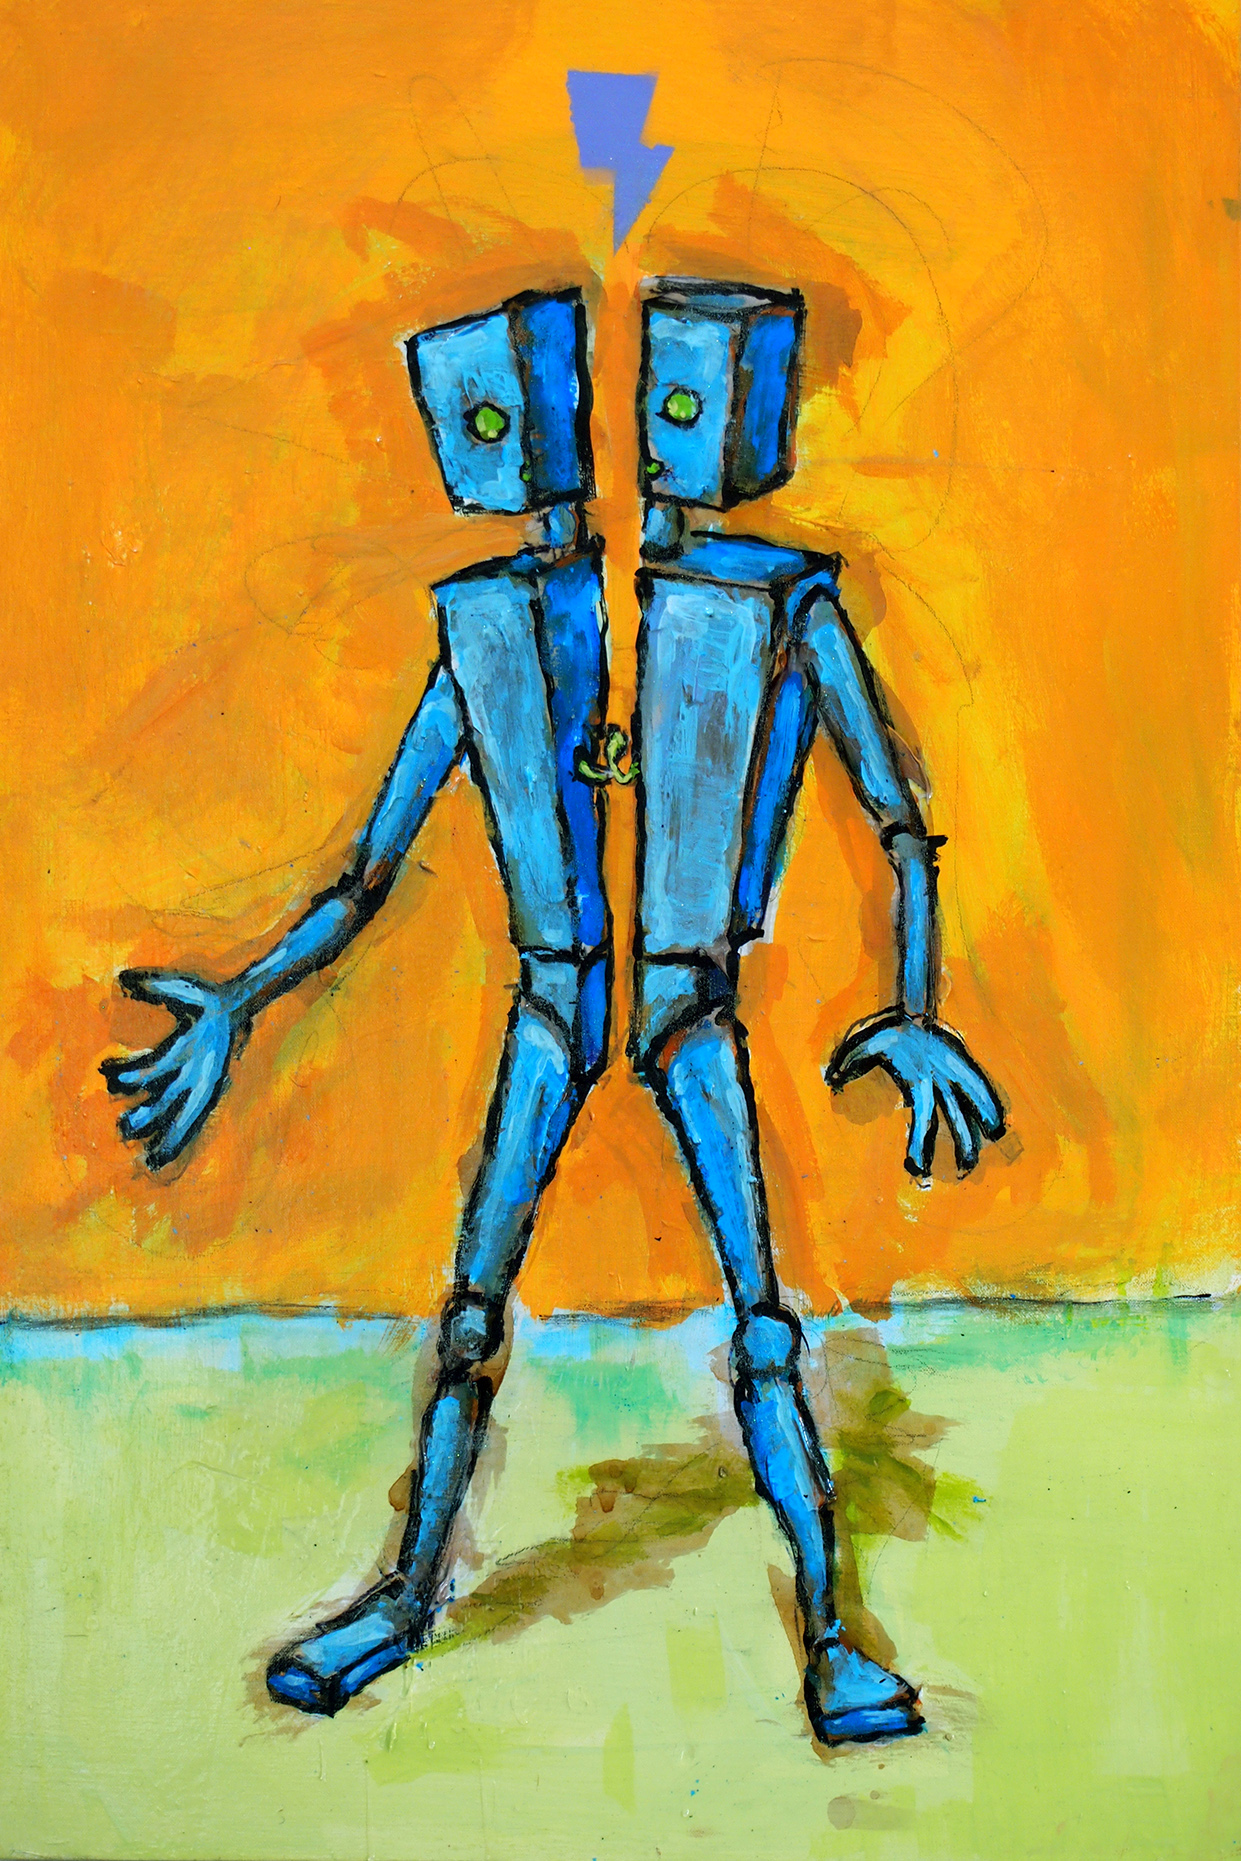 "Another piece I will have at this show: https://www.facebook.com/events/464355500272560/    Blue Boxtop is Broken in Half   24"" x 36"". Mixed media on canvas."